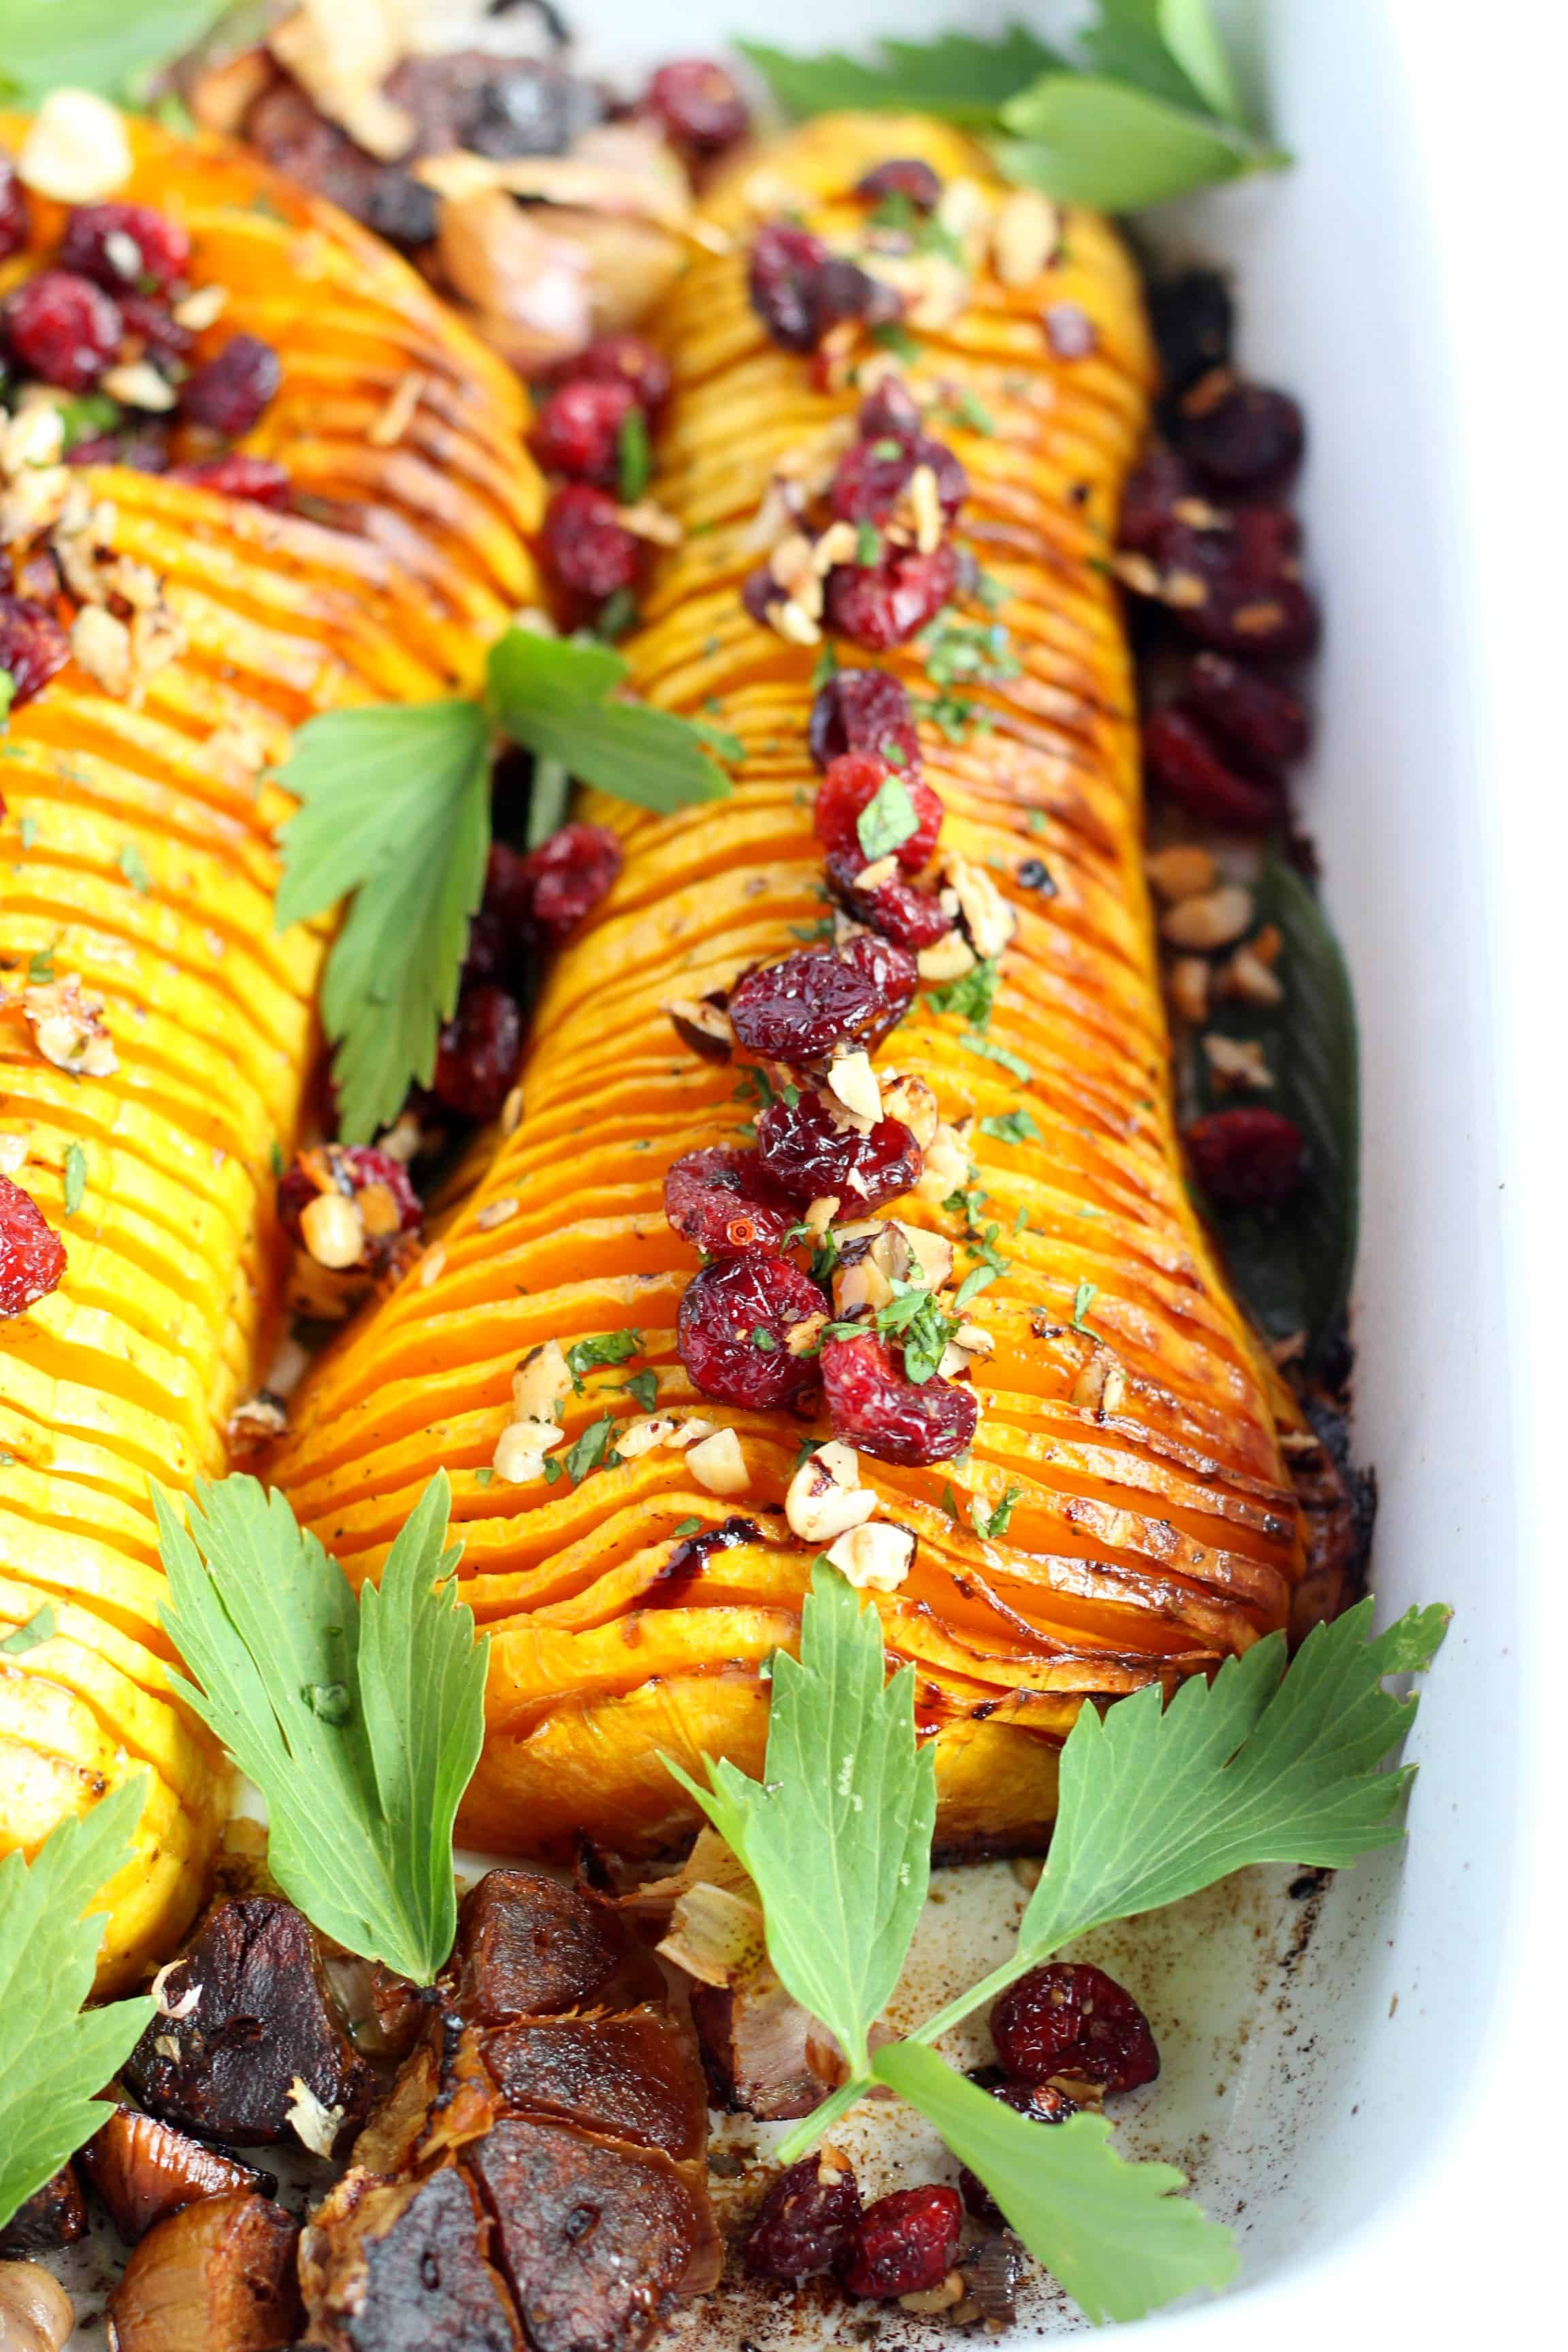 hasselback butternut squash with nuts and cranberries